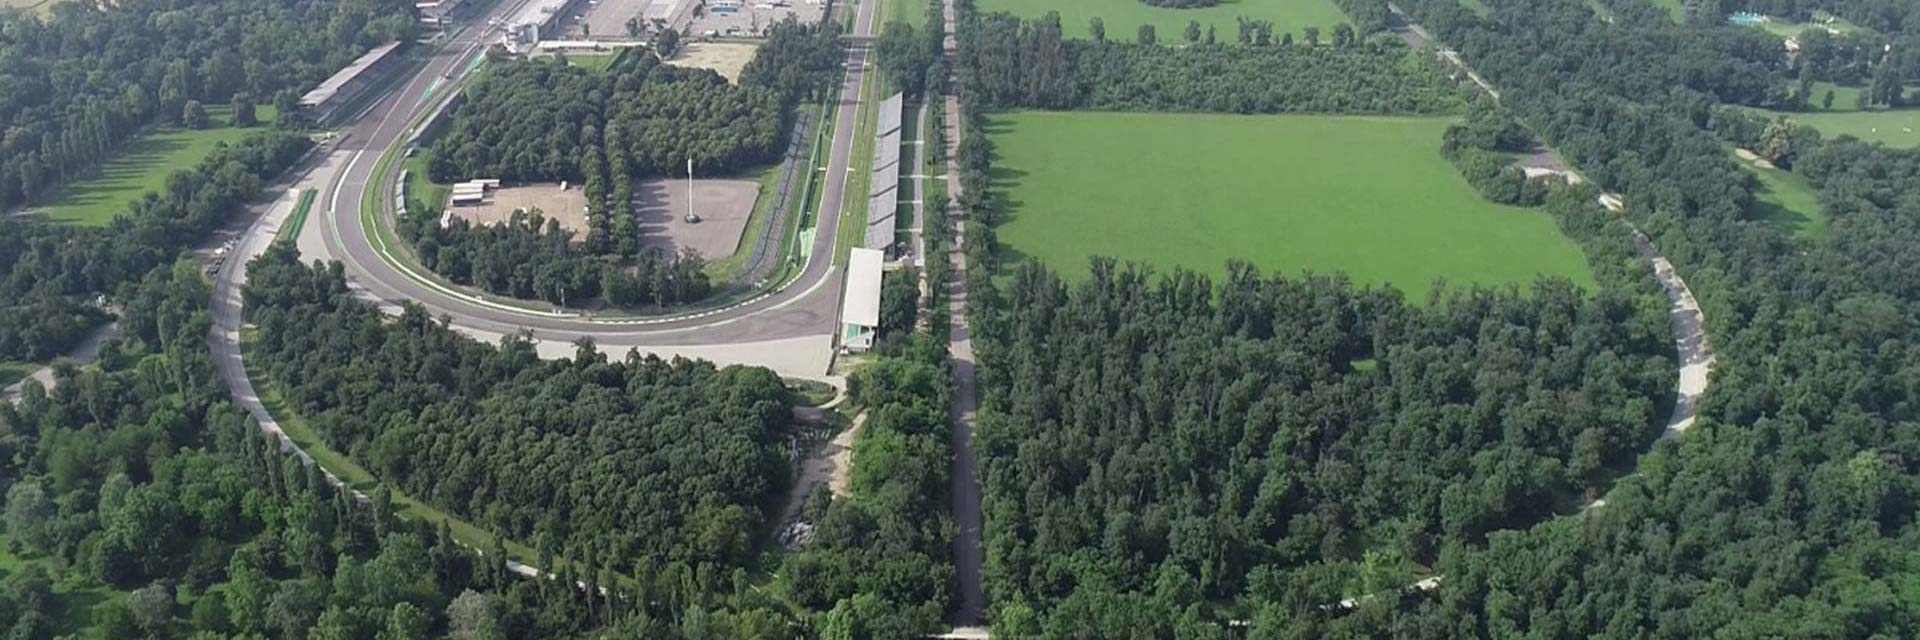 GEDLICH Racing - Legendary Racetrack Monza